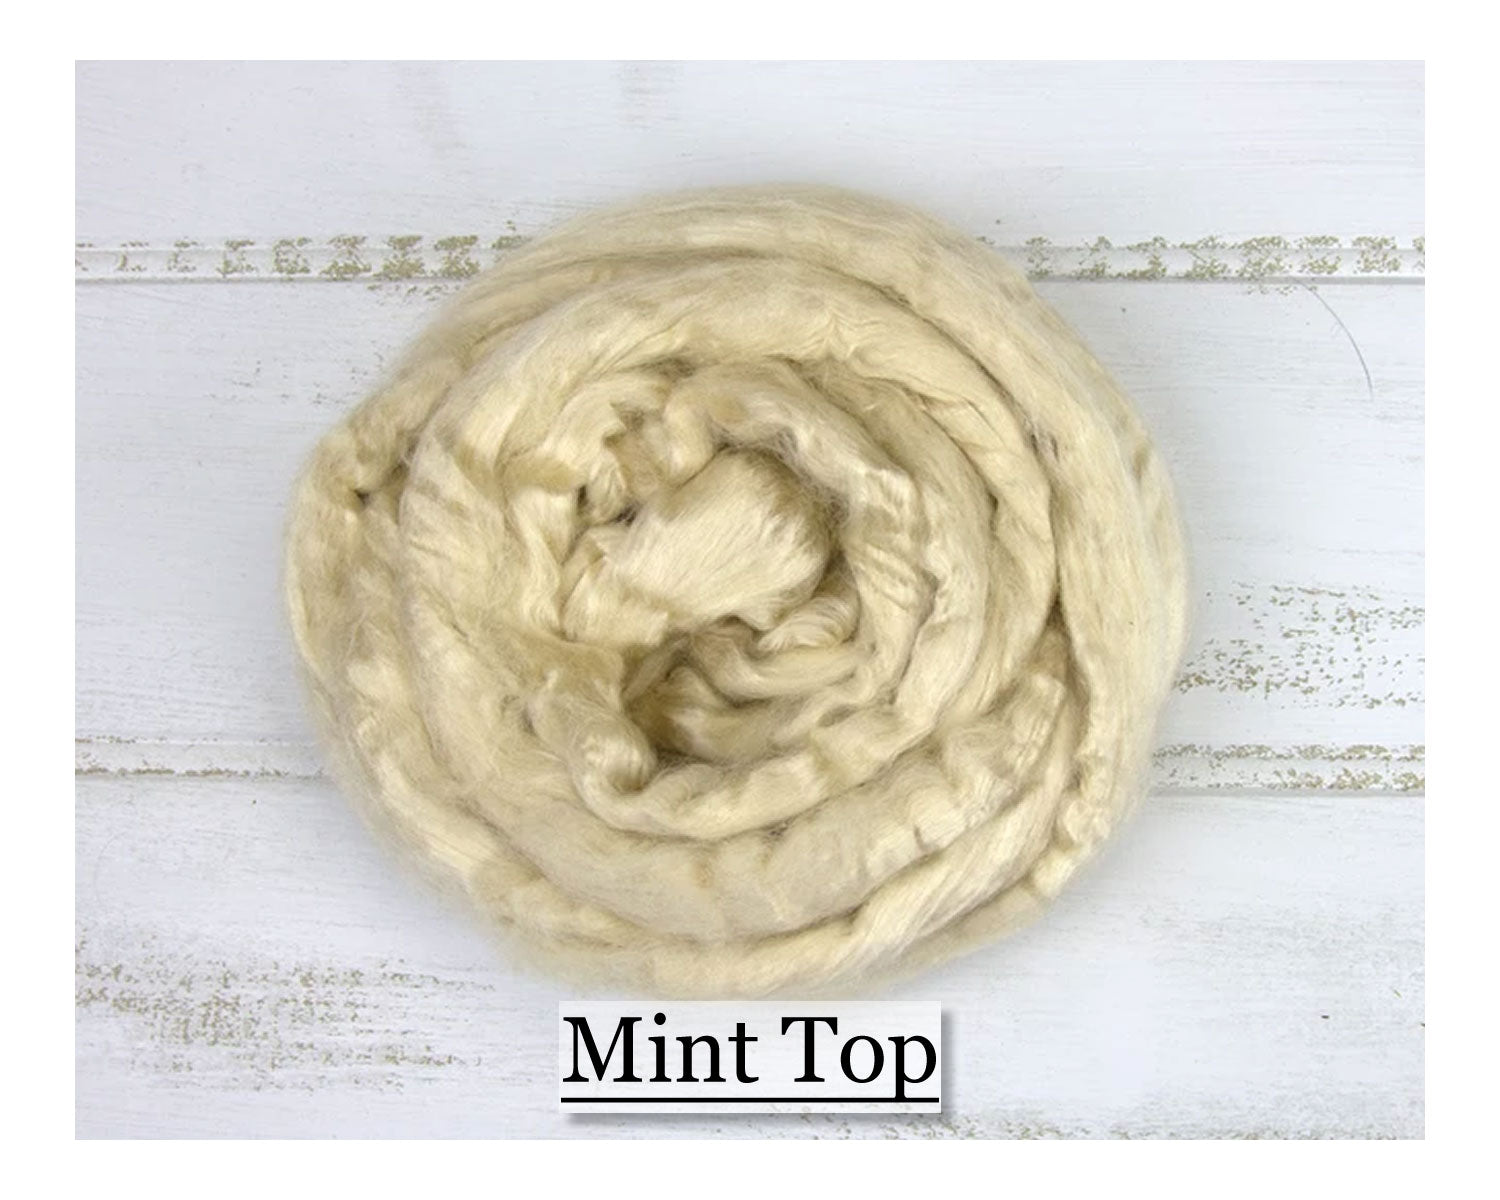 Mint Fiber Top - 1, 2 or 4 oz